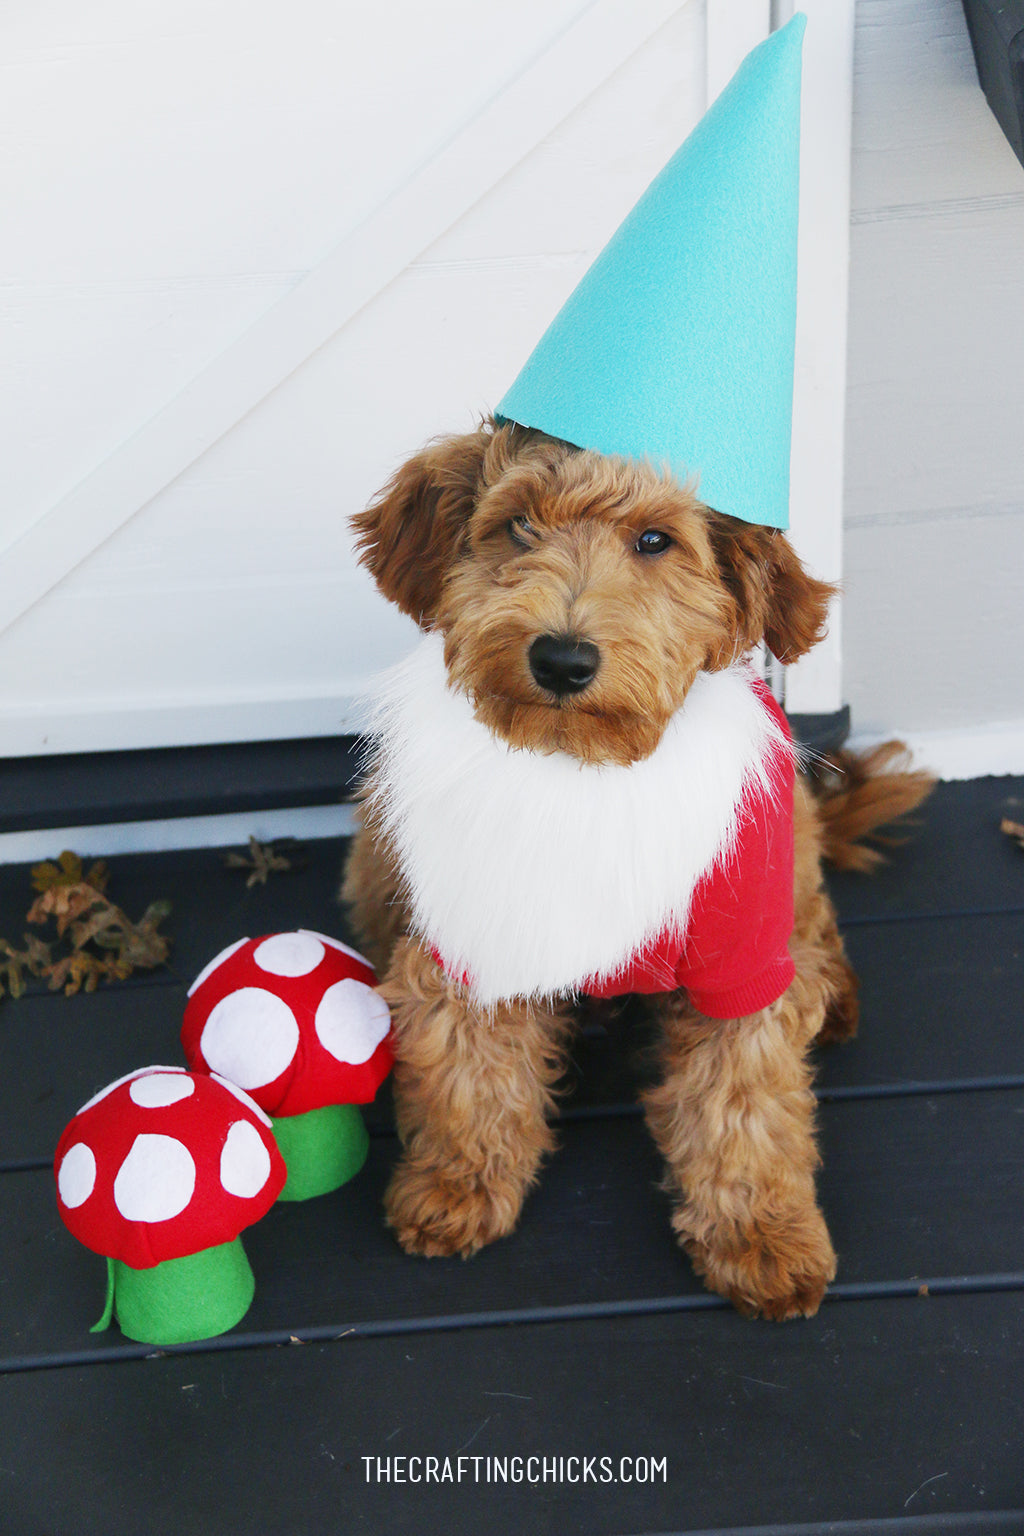 Do it yourself gnome costume for dogs at Crafting Chicks on the Scollar personalized pet marketplace.